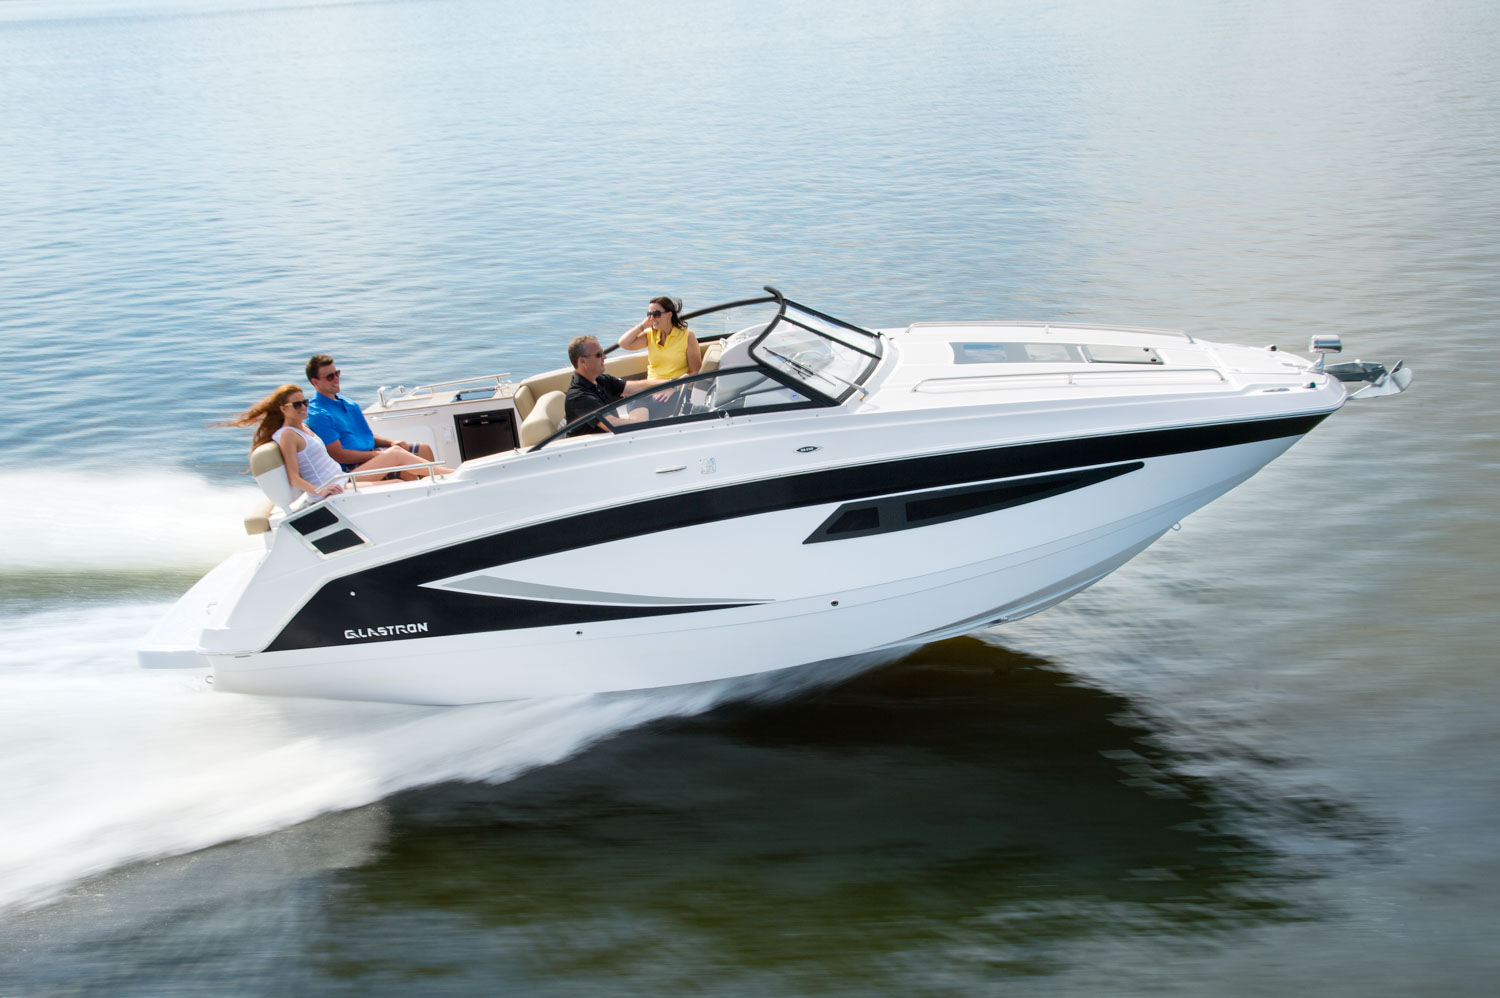 2019 Glastron GS Boat